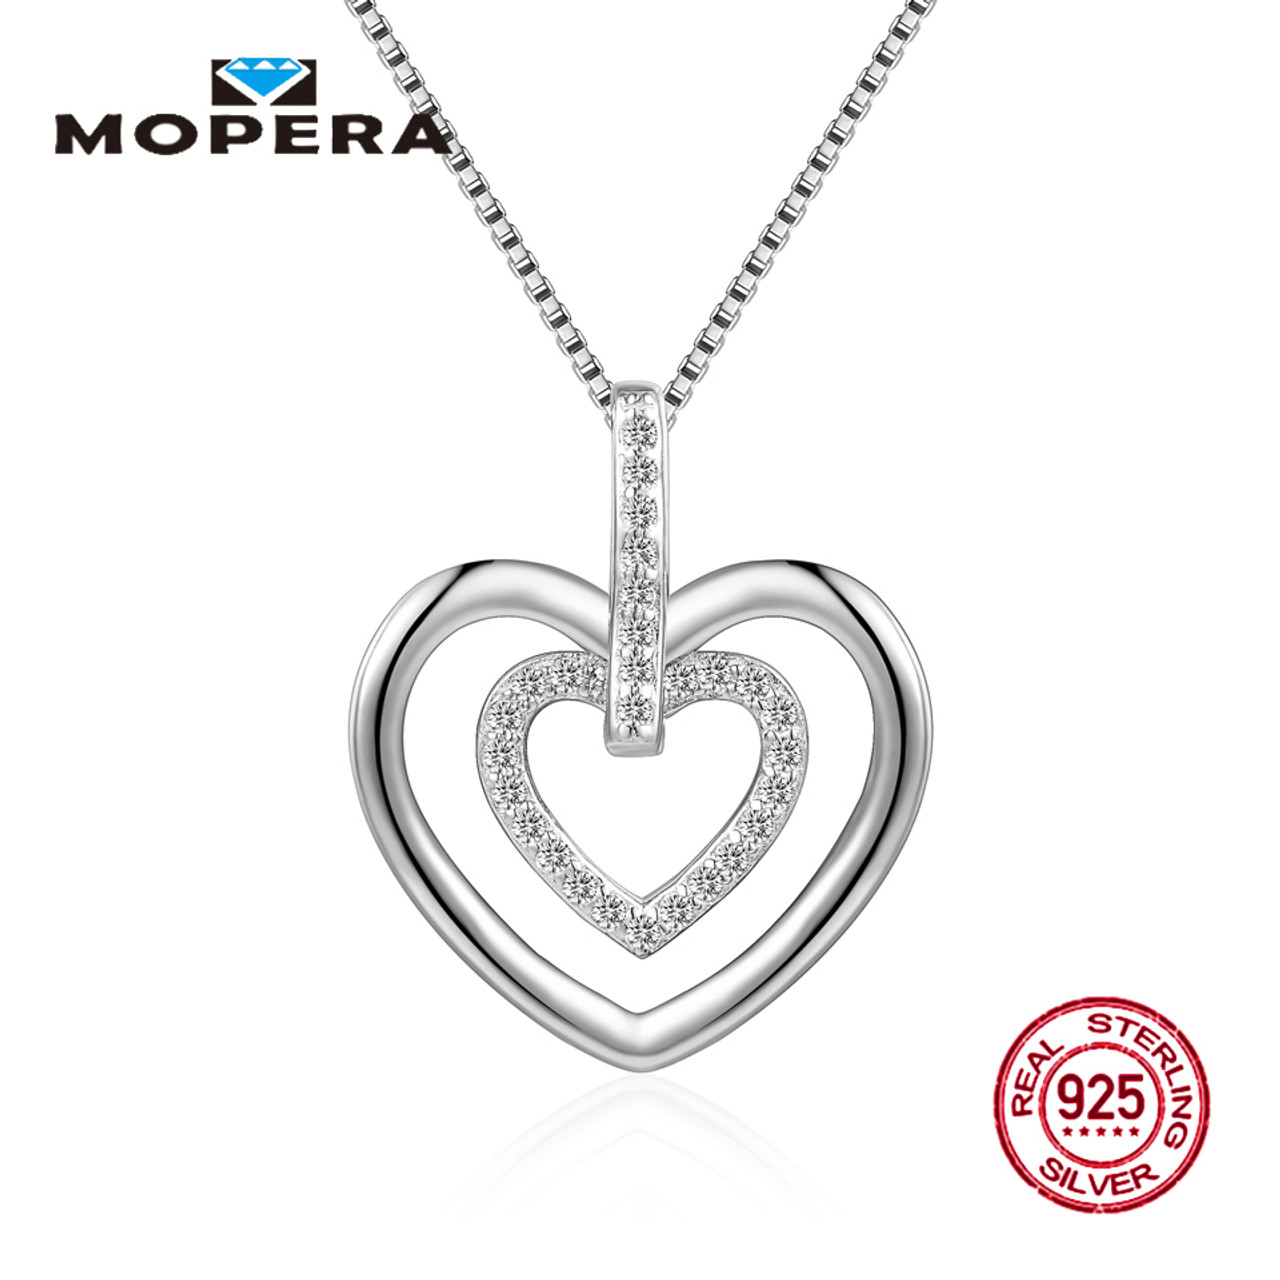 Mopera 100 real silver pendant necklace double love crystal mopera 100 real silver pendant necklace double love crystal pendant with chain 925 sterling women aloadofball Image collections